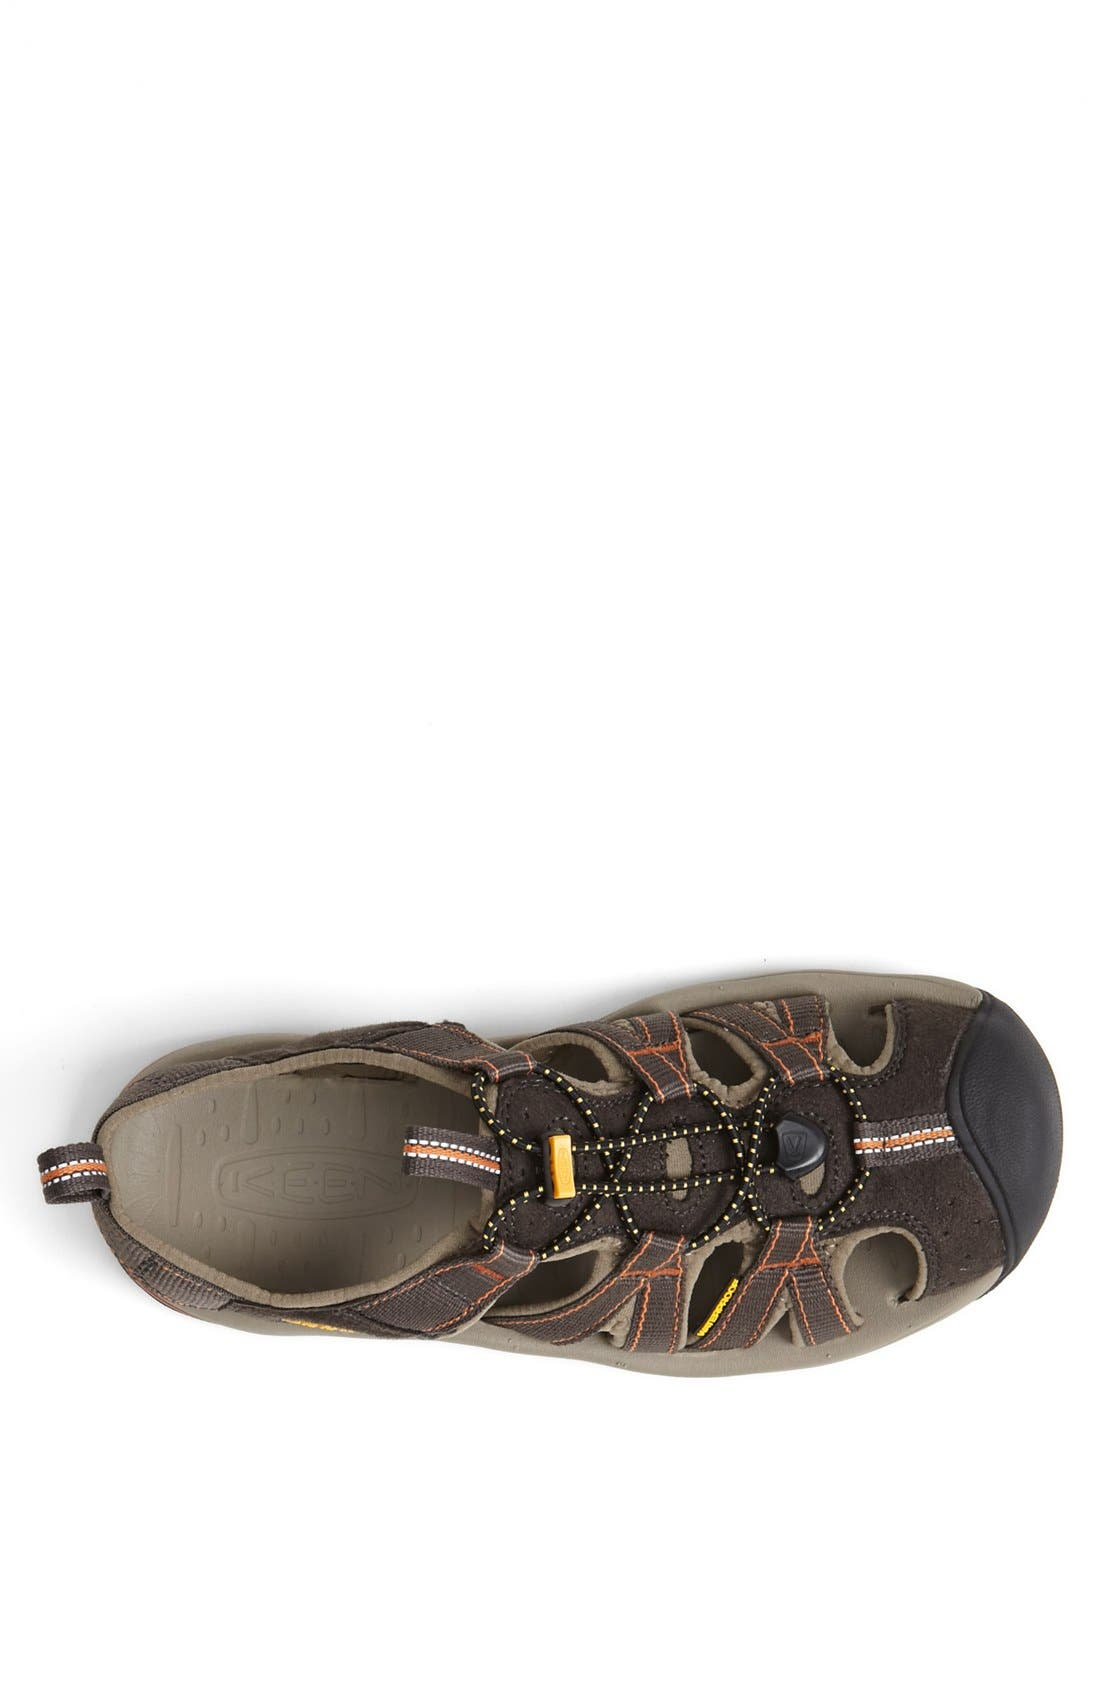 Alternate Image 3  - Keen 'Kanyon' Waterproof Sandal (Men)